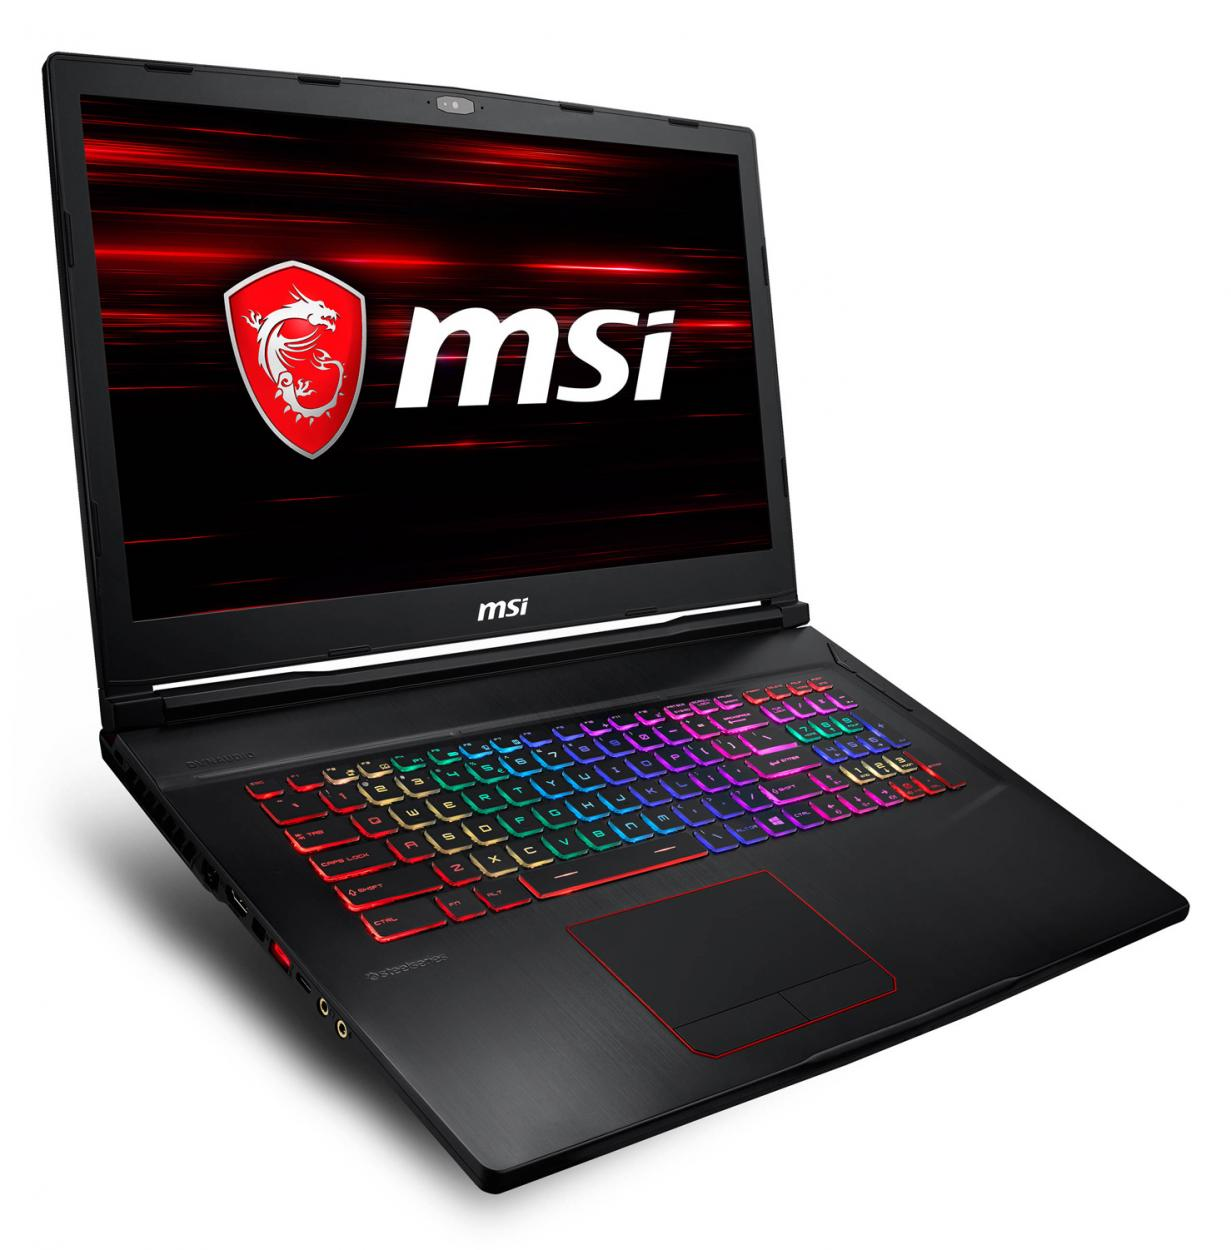 MSI GE73 8RE Specs and Details